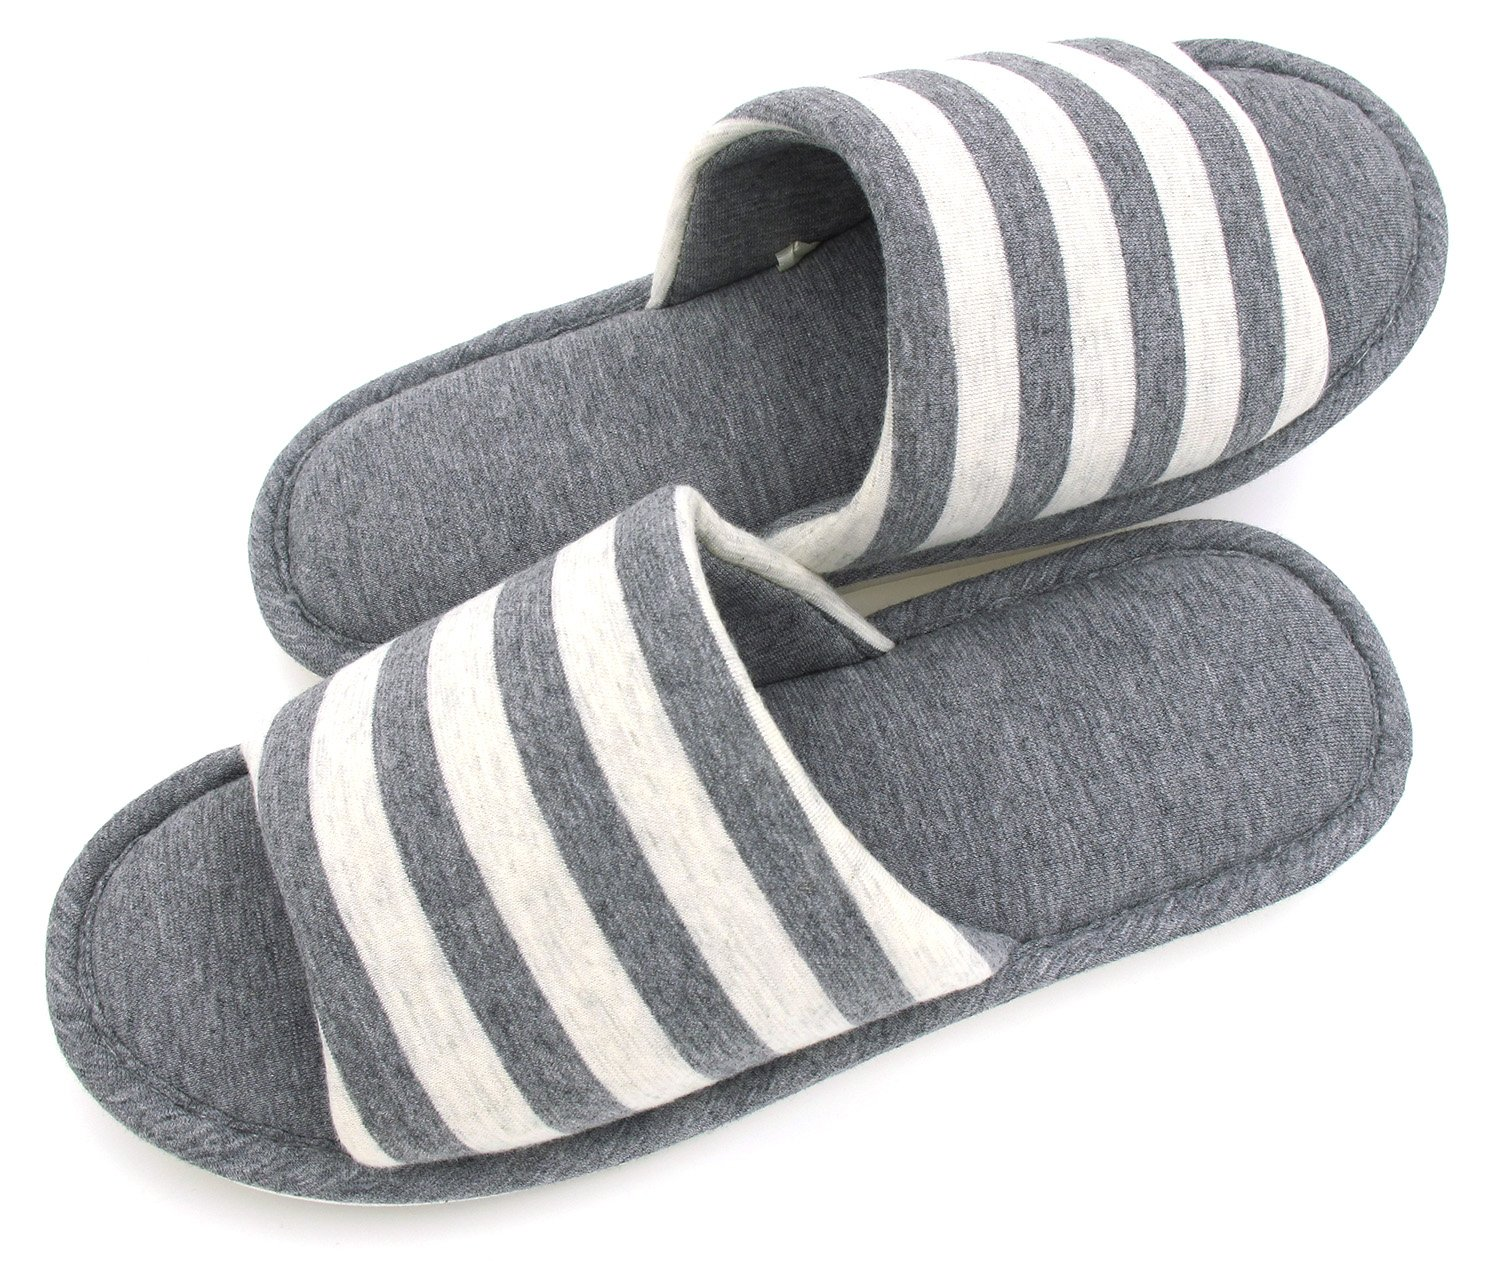 Sunshine Code Unisex Memory Foam Cotton Washable Stripe Slippers for Travel House Hotel Spa Bedroom, 28CM, Grey Stripes